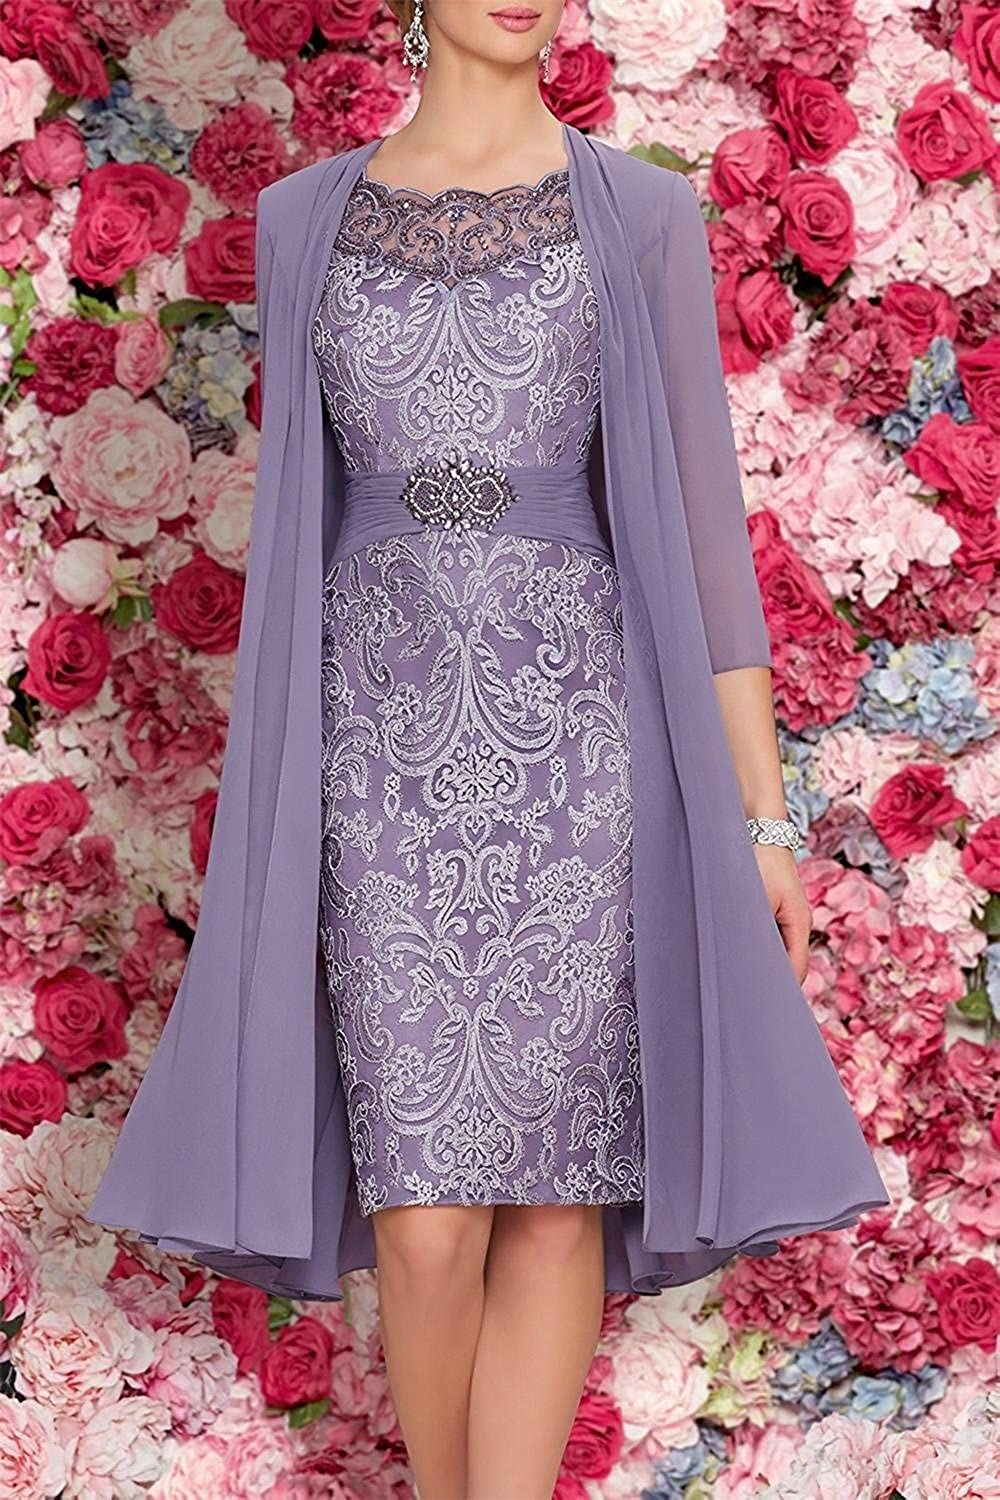 336647b0313 Banfvting Purple Mother of The Bride Dresses Tea Length Two Pieces With  Jacket at Amazon Women s Clothing store